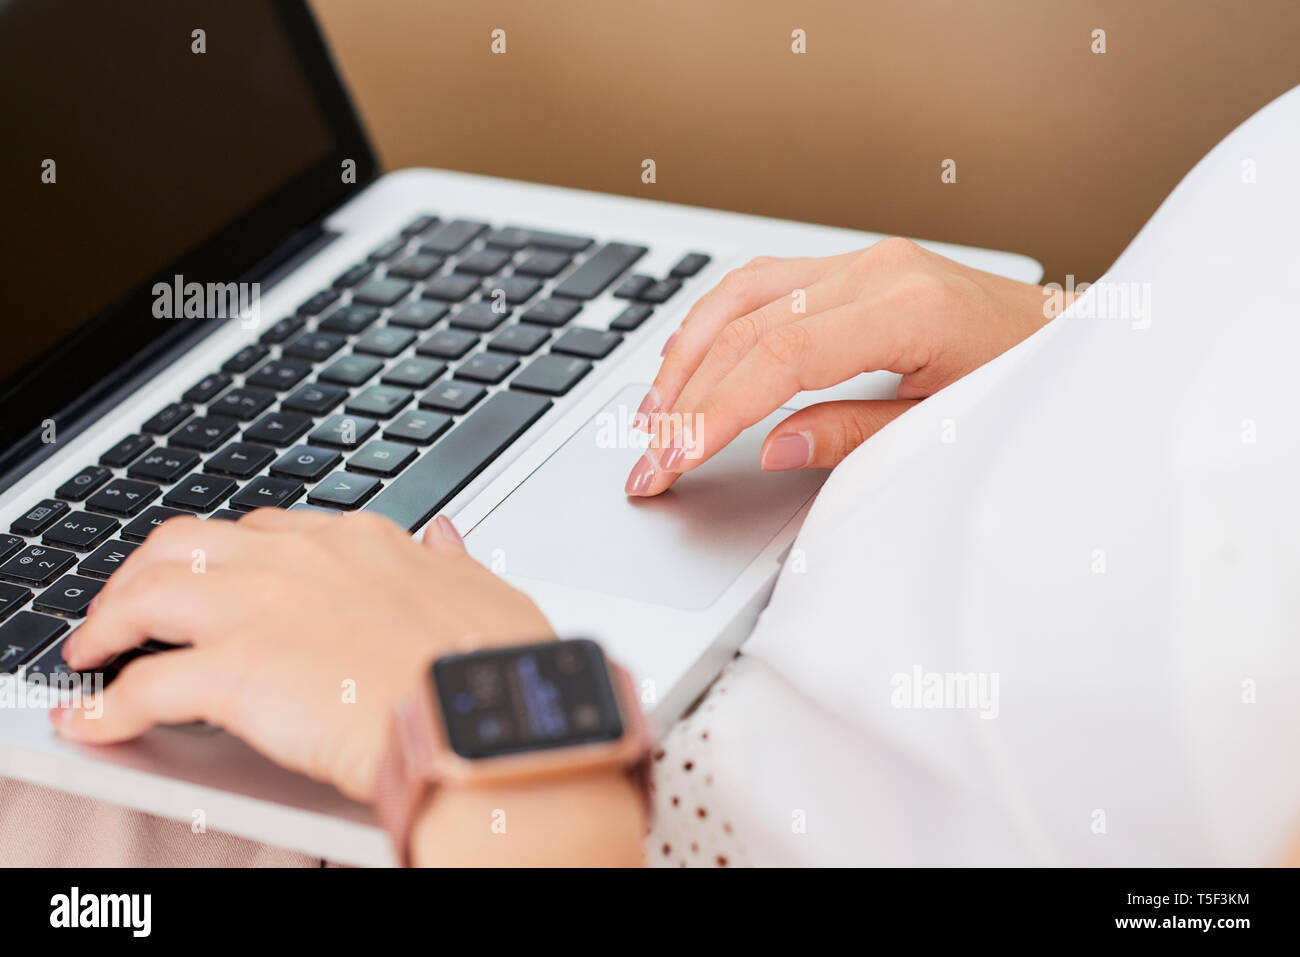 Hands of woman working on laptop - Stock Image